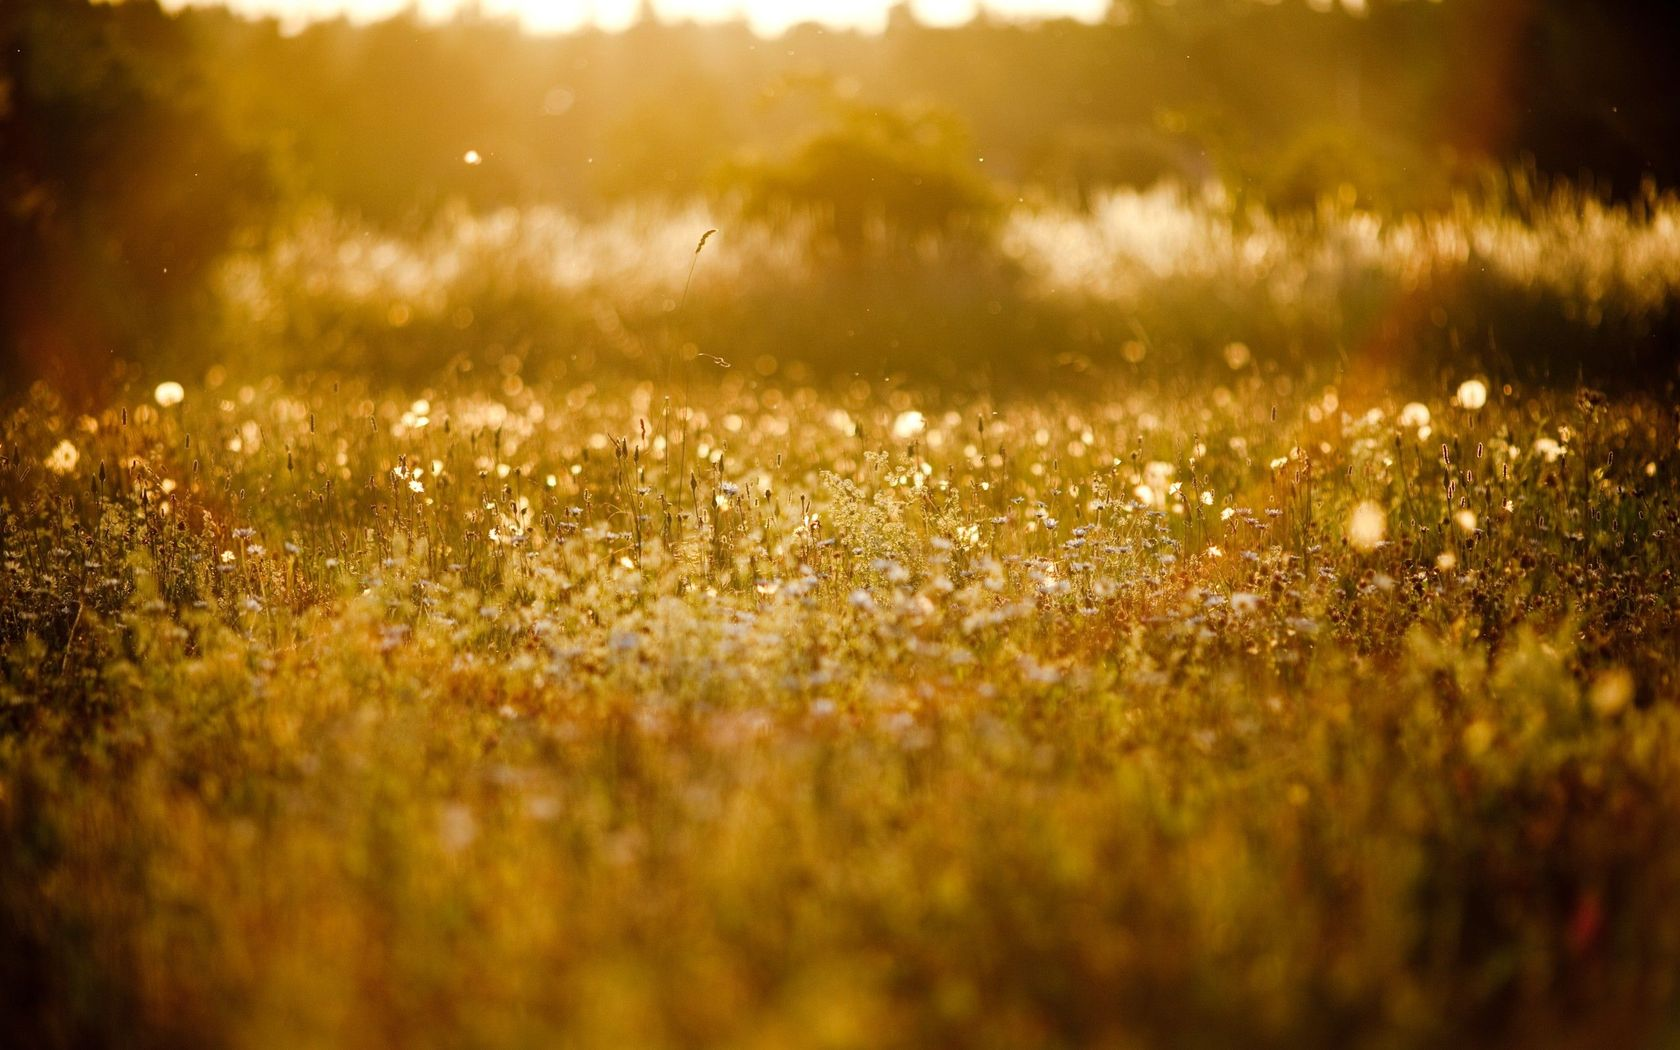 field-of-flowers-in-the-summer-light-16776